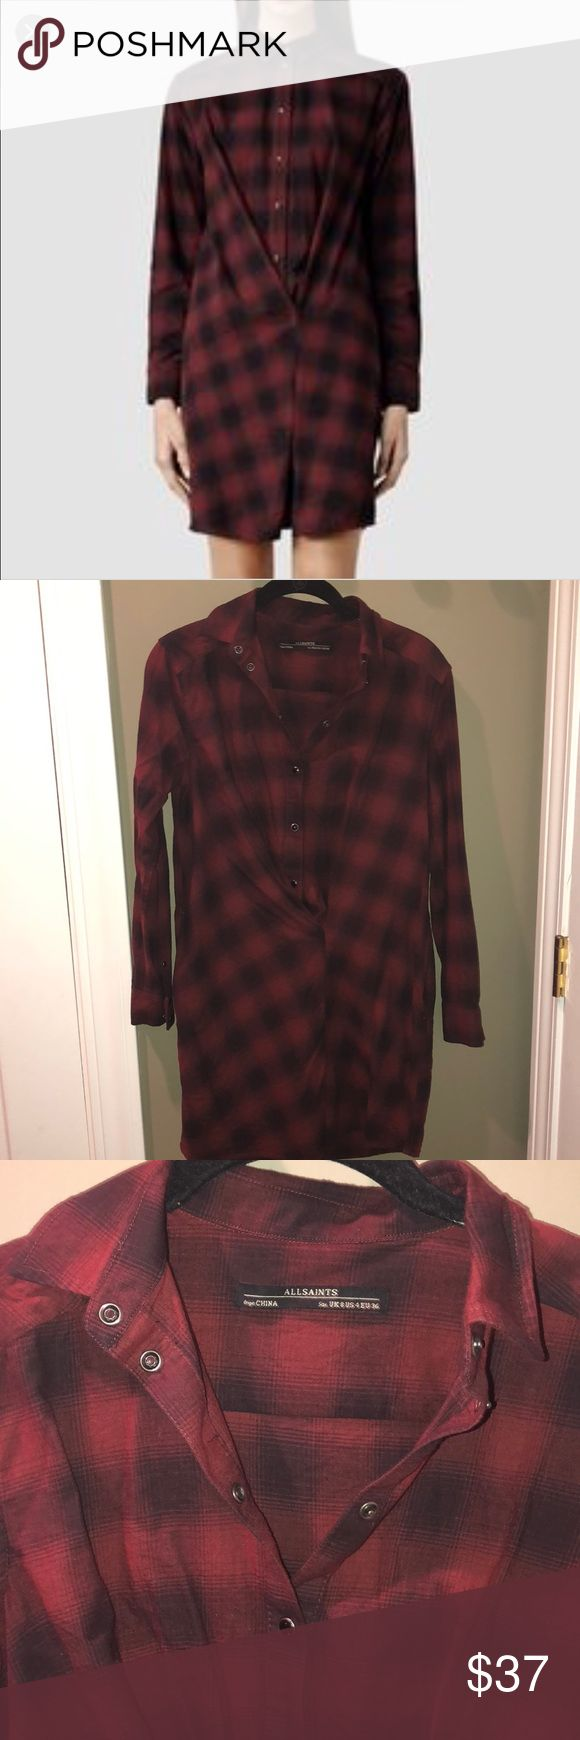 All Saints Flannel Shirt Dress Red and black AWESOME flannel shirt dress by All Saints. Side pockets, cool cross over detail, 100% cotton. Gently worn, no flaws. US size 4. All Saints Dresses